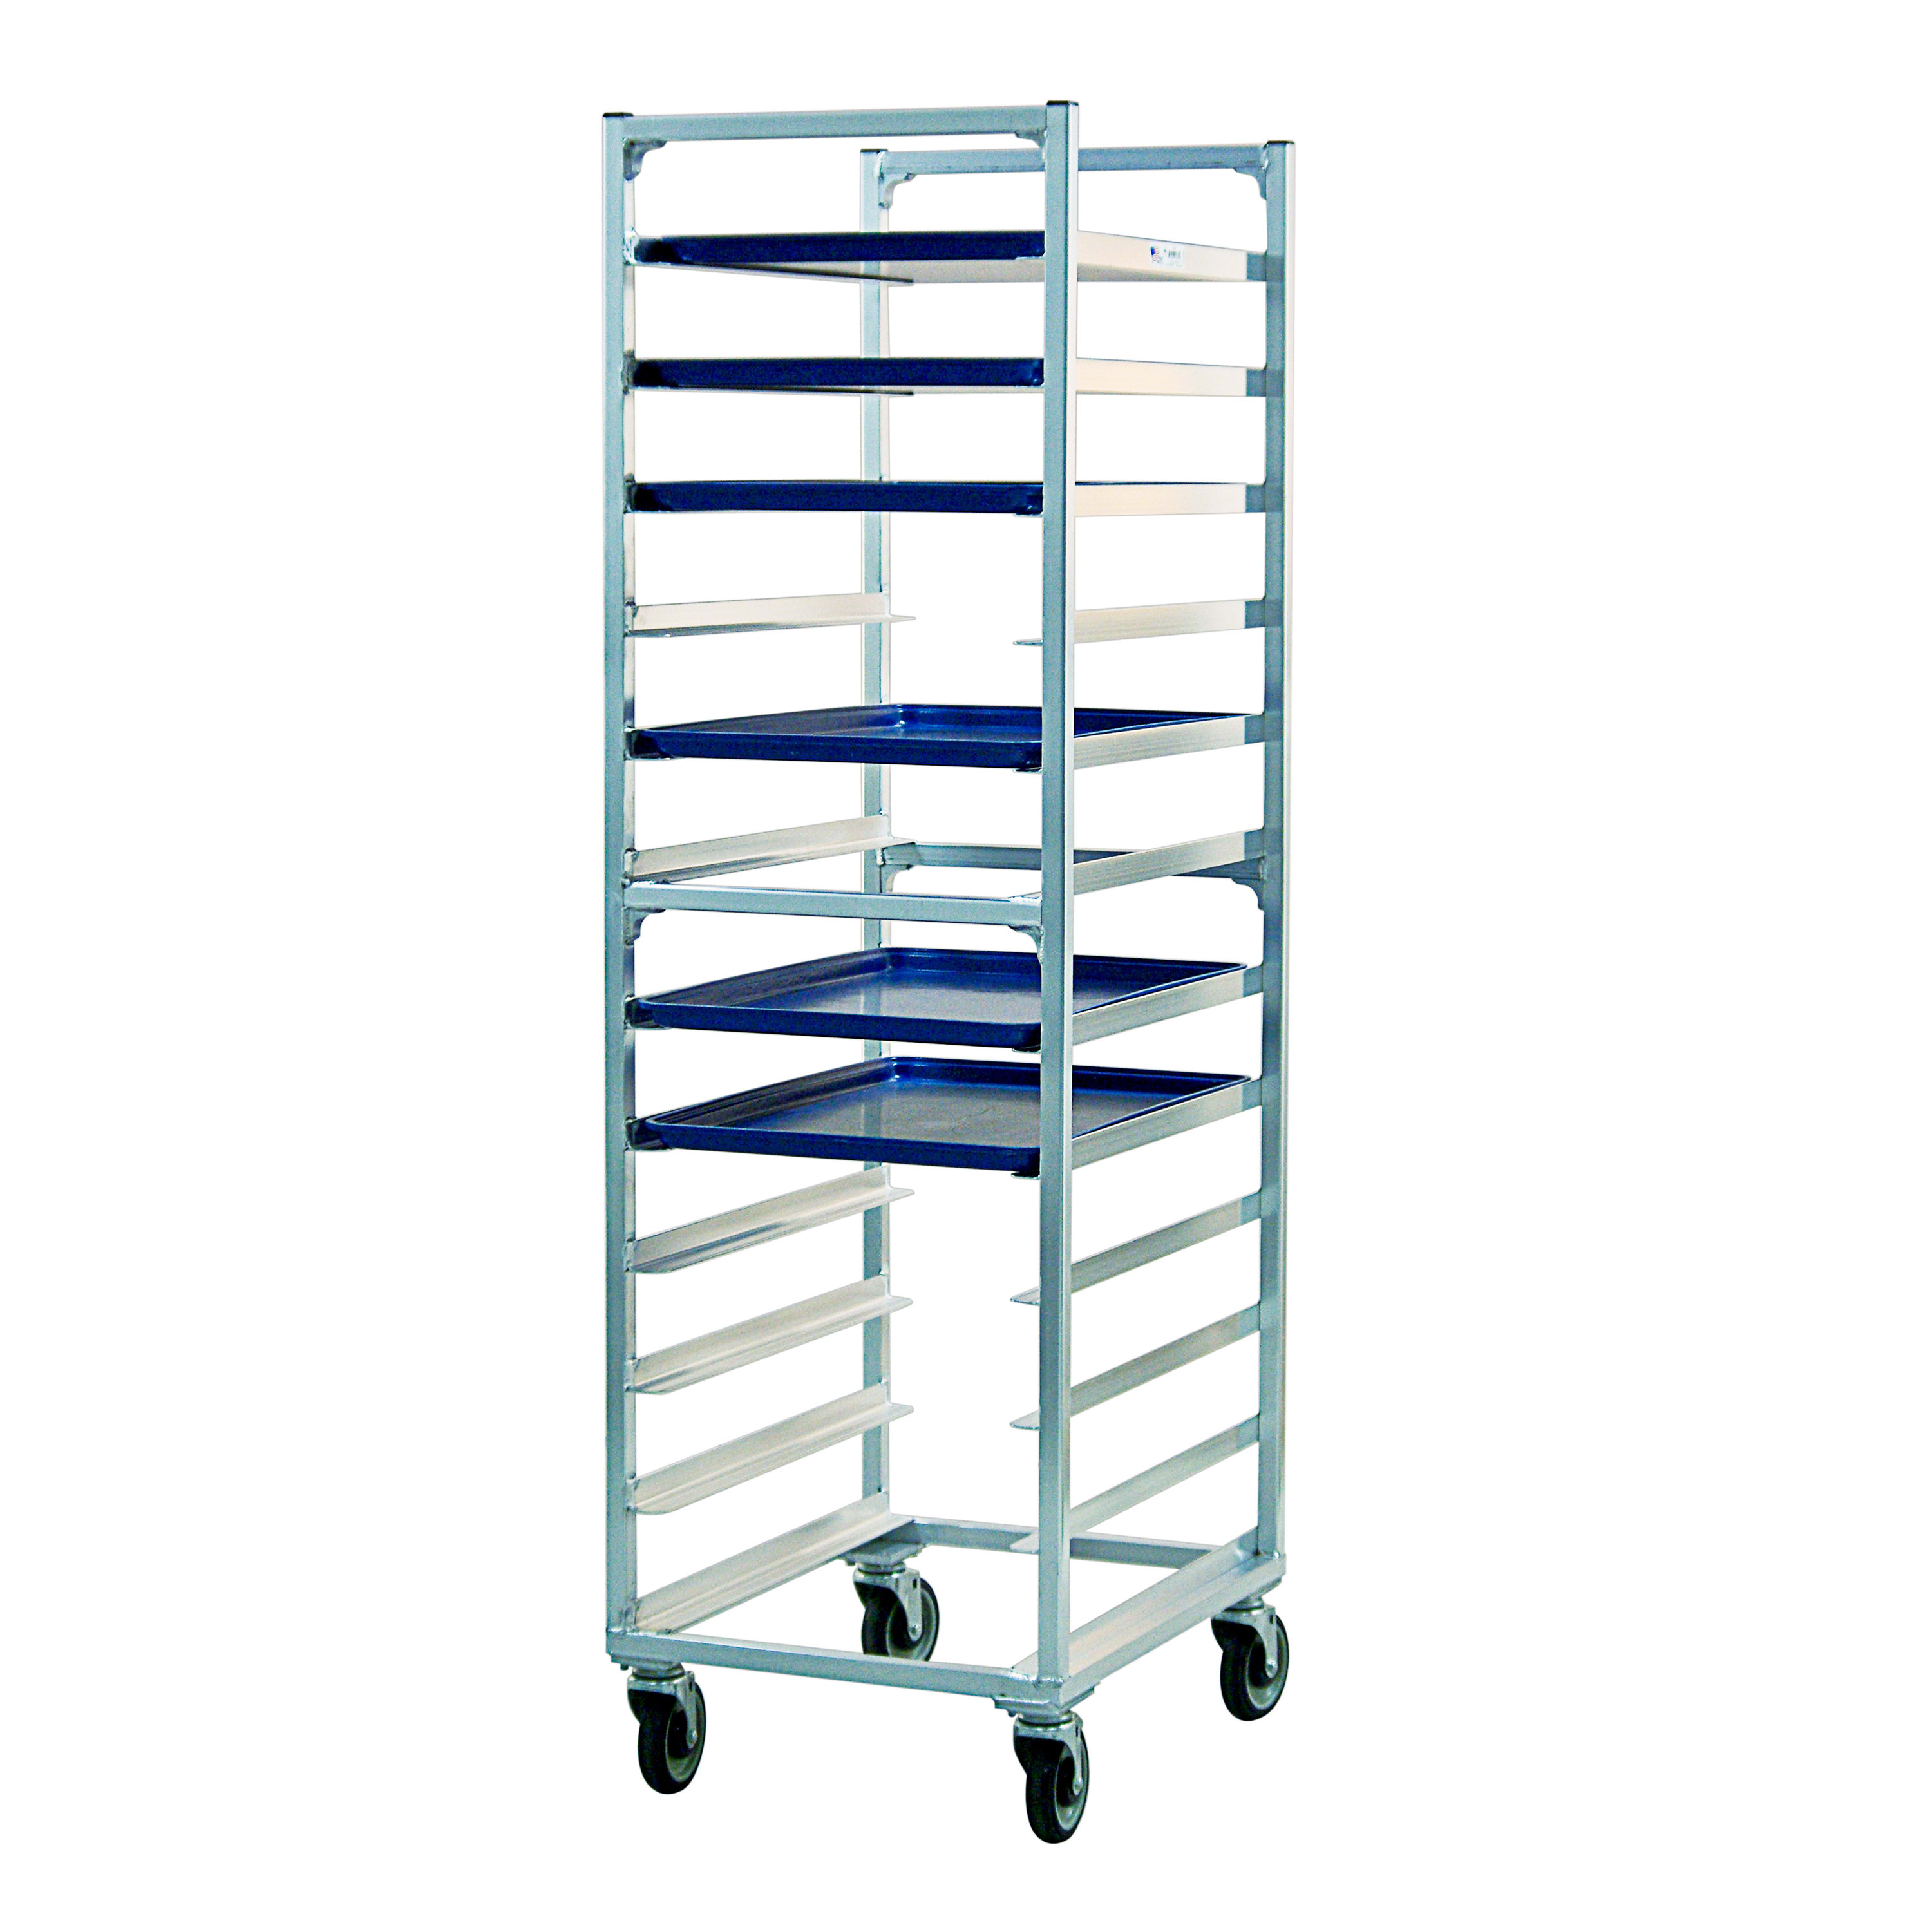 New Age 1333 Full Bun Pan Rack, End Load, 12 Capacity